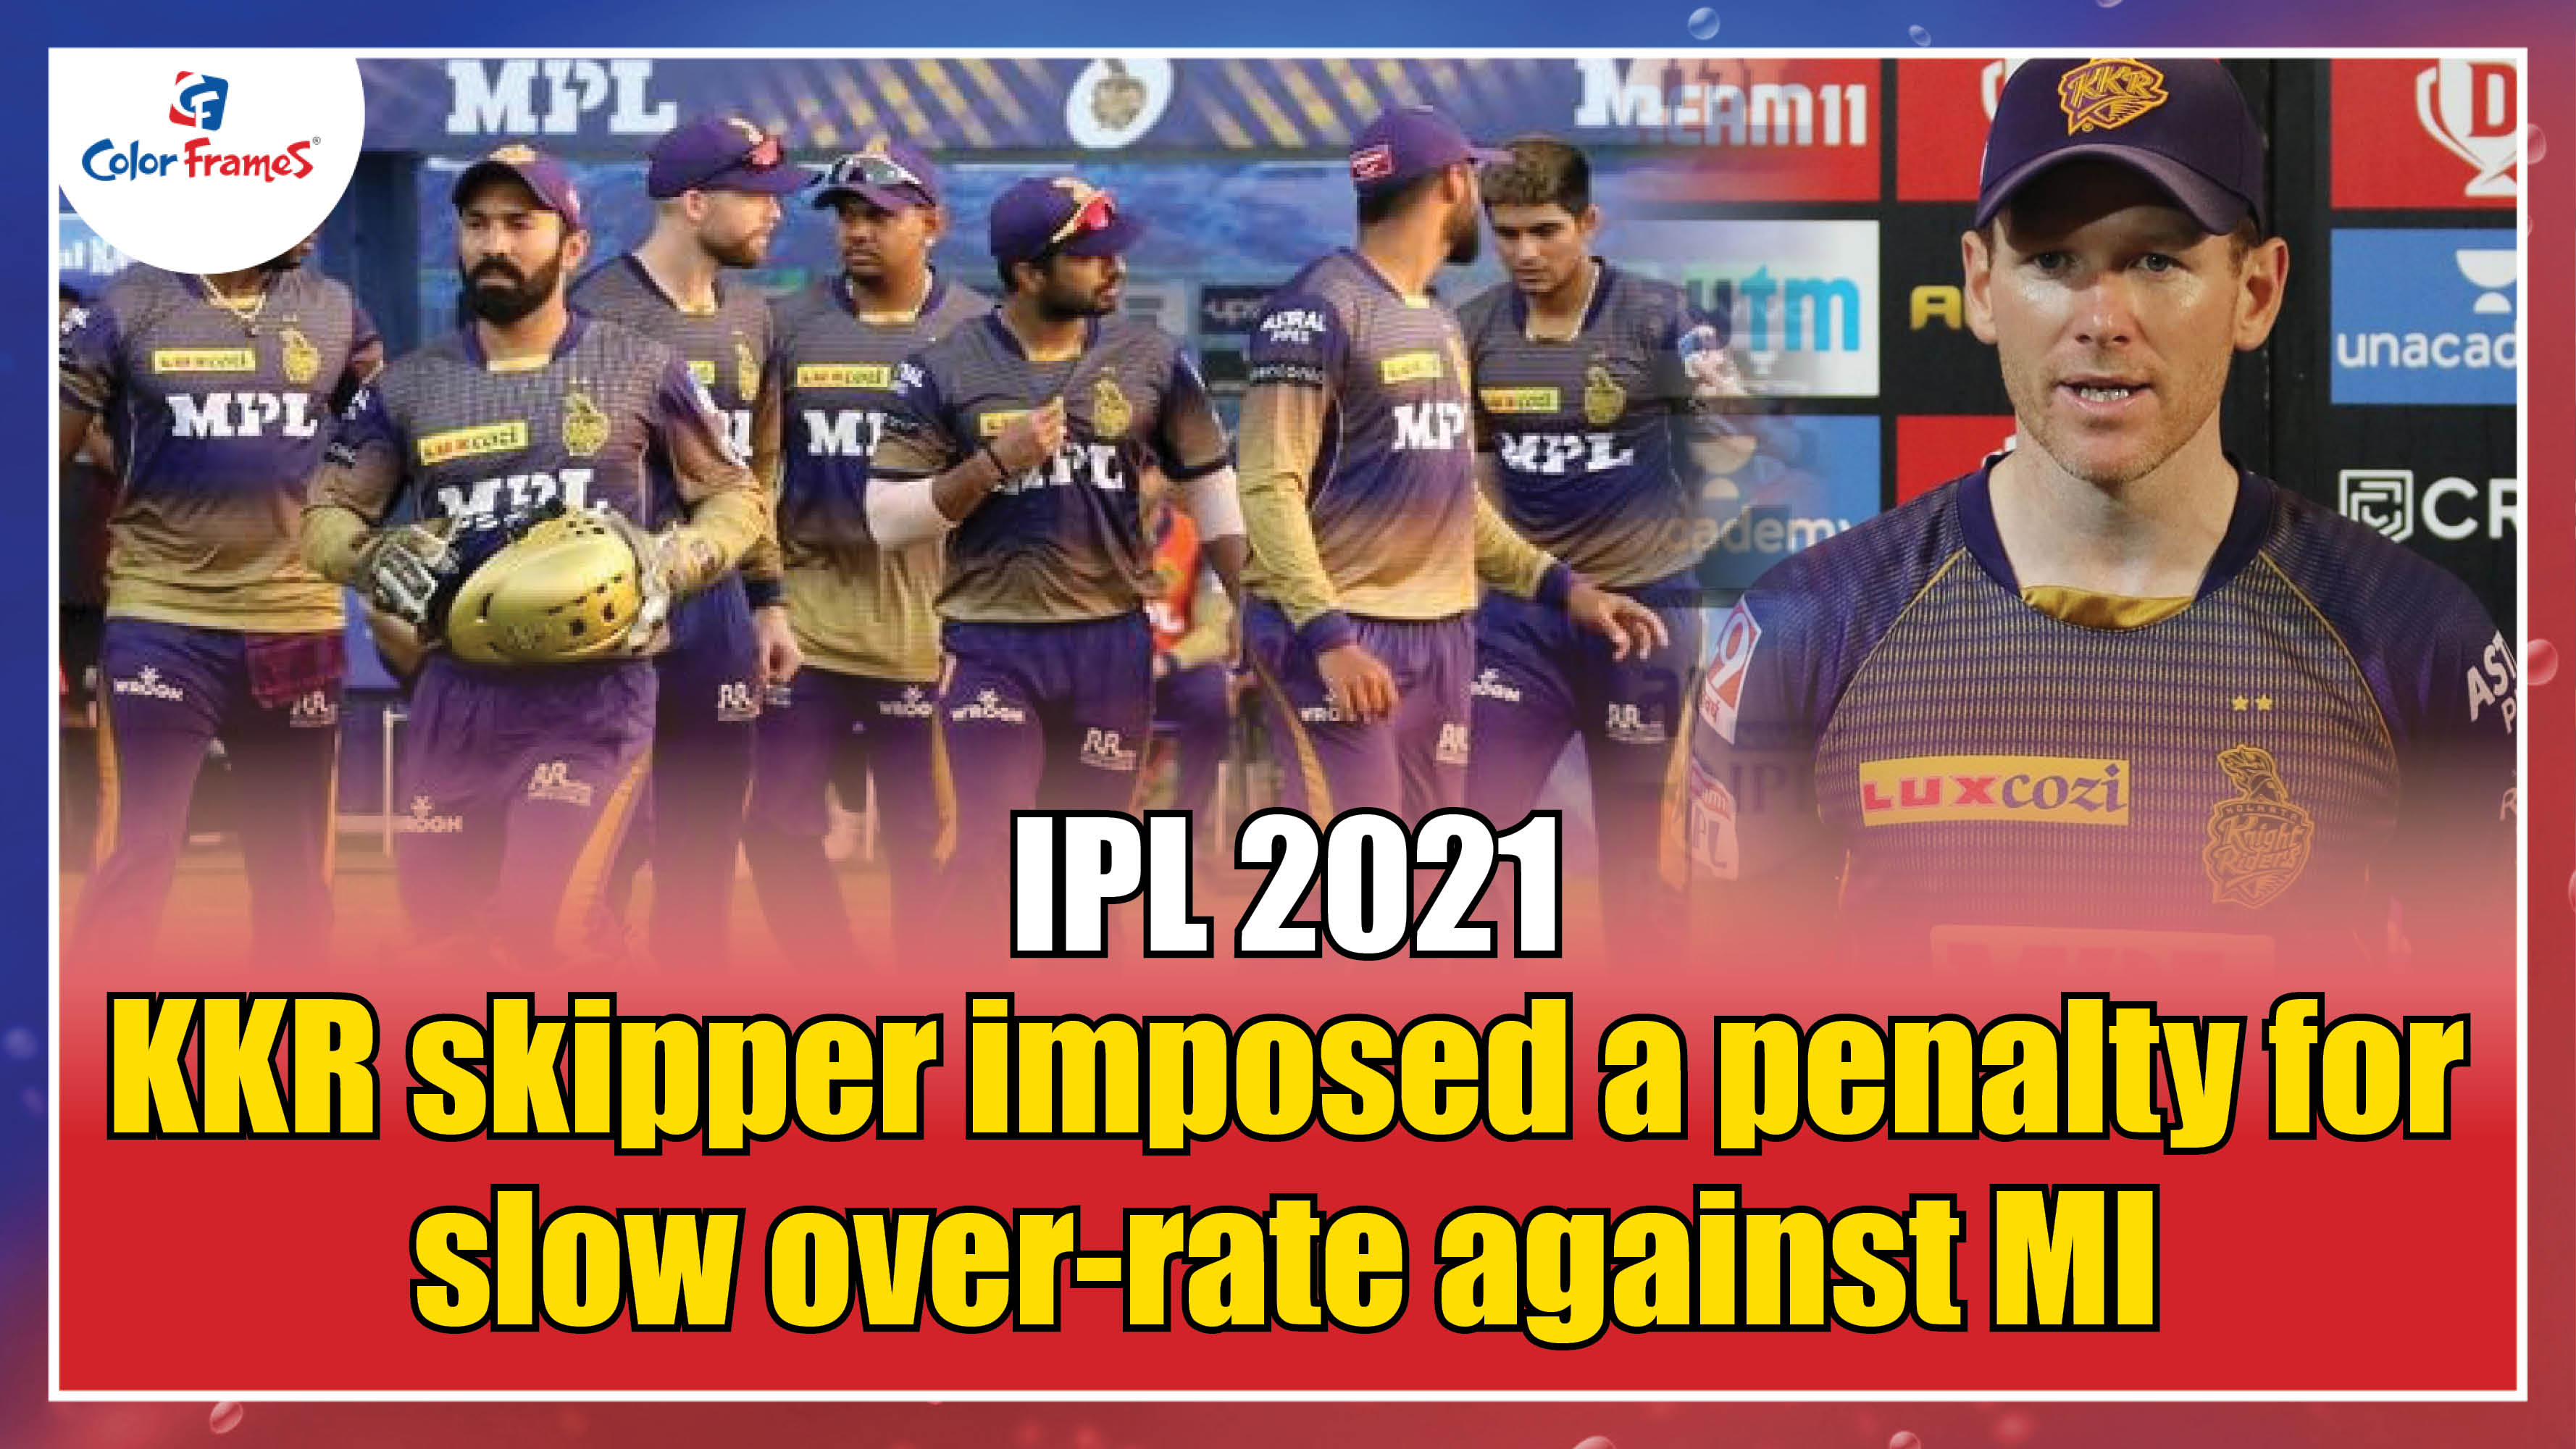 IPL 2021: KKR skipper imposed a penalty for slow over-rate against MI